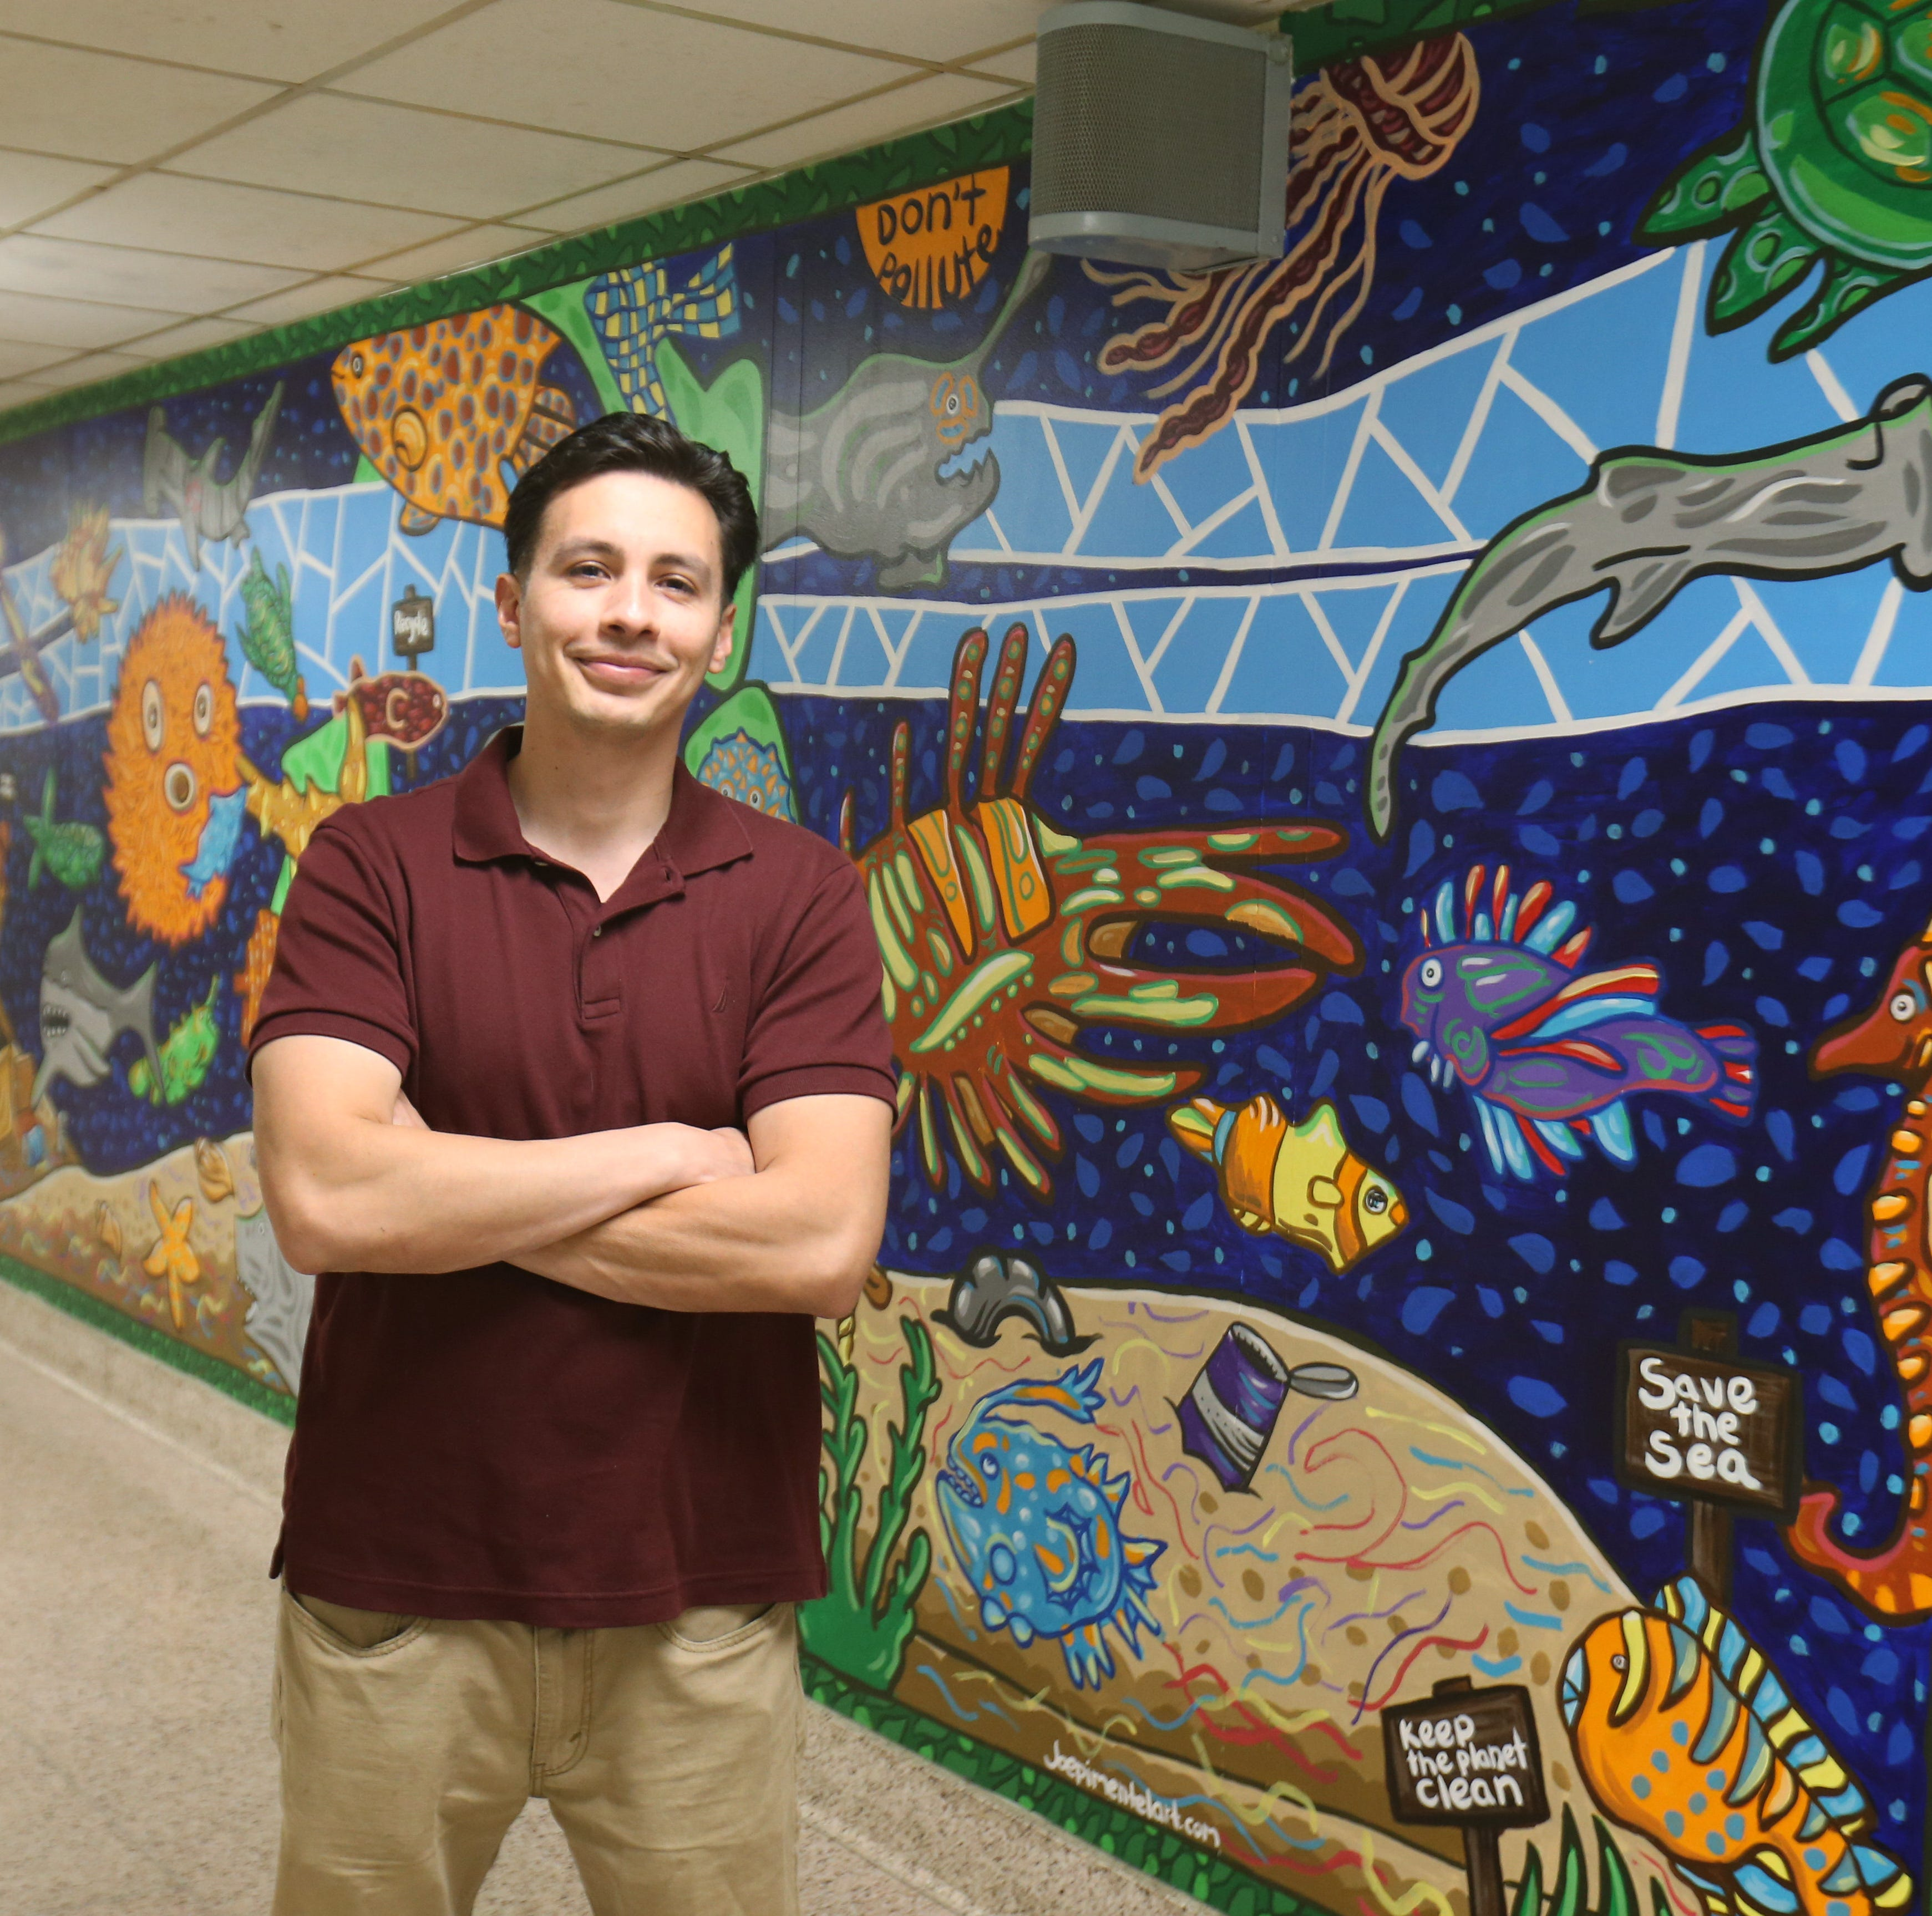 Art springs from the imagination - and onto the walls - for muralist Joe Pimentel